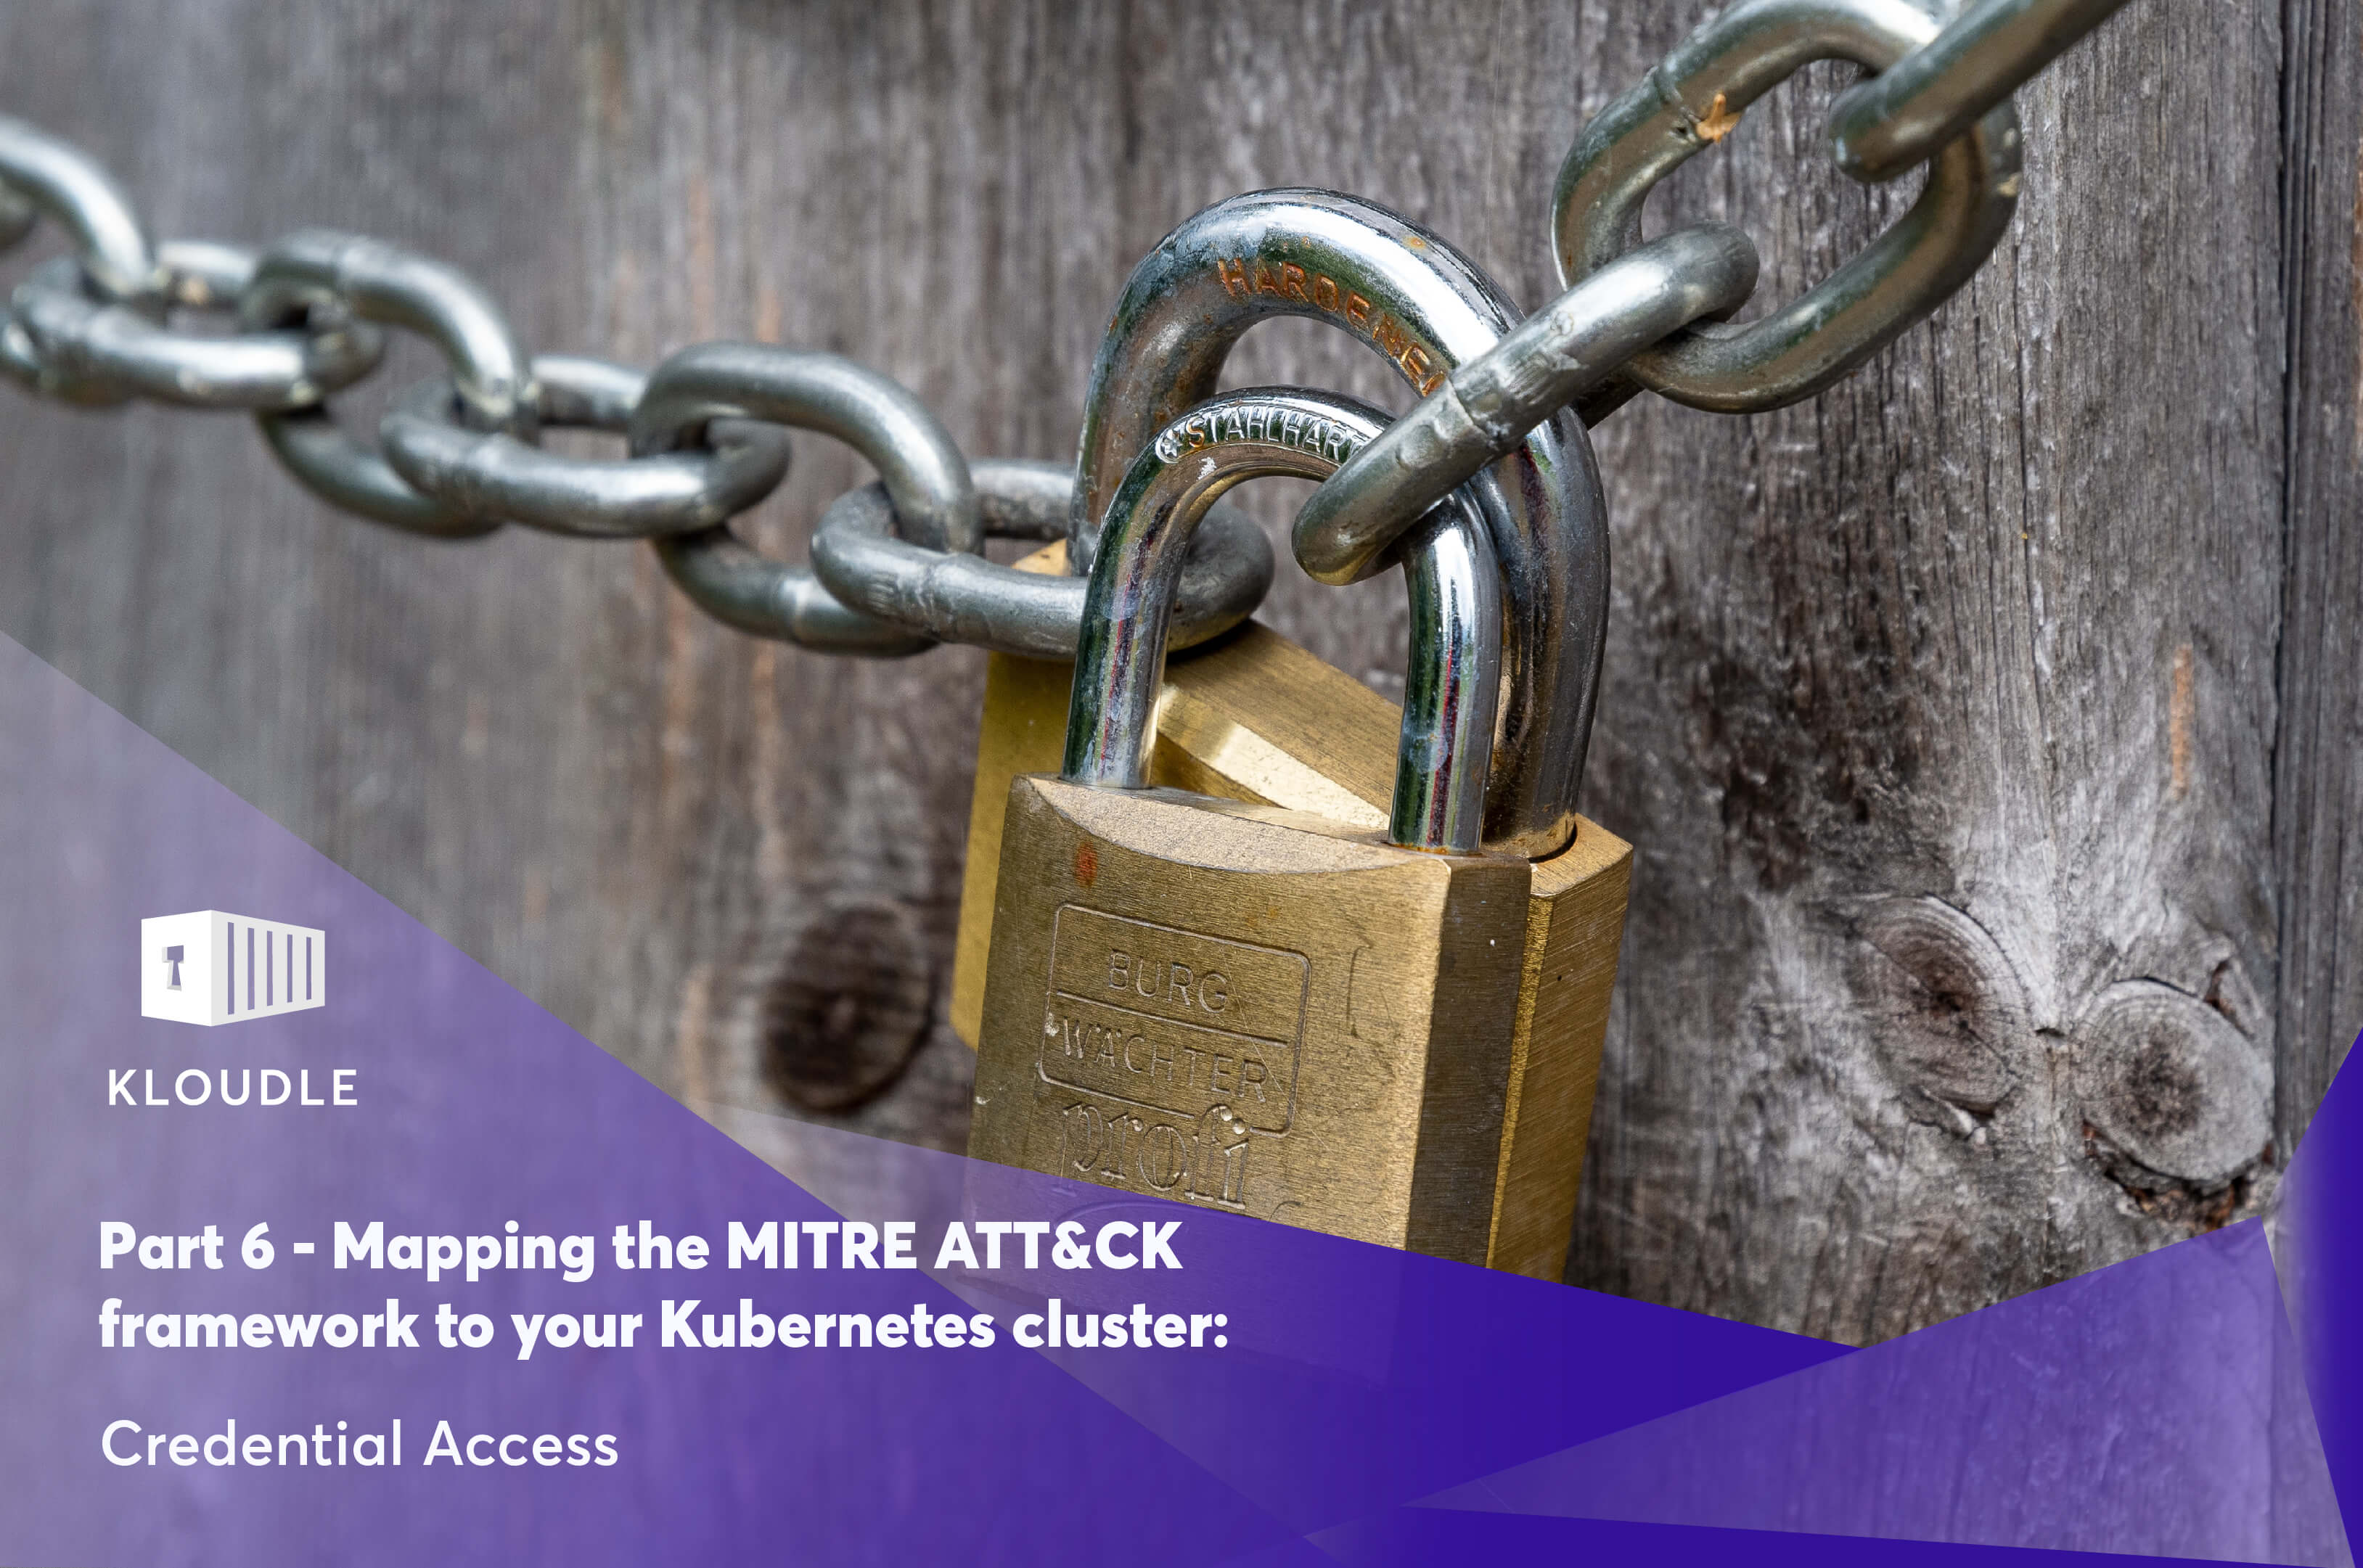 Part 6 - Mapping the MITRE ATT&CK framework to your Kubernetes cluster: Credential Access